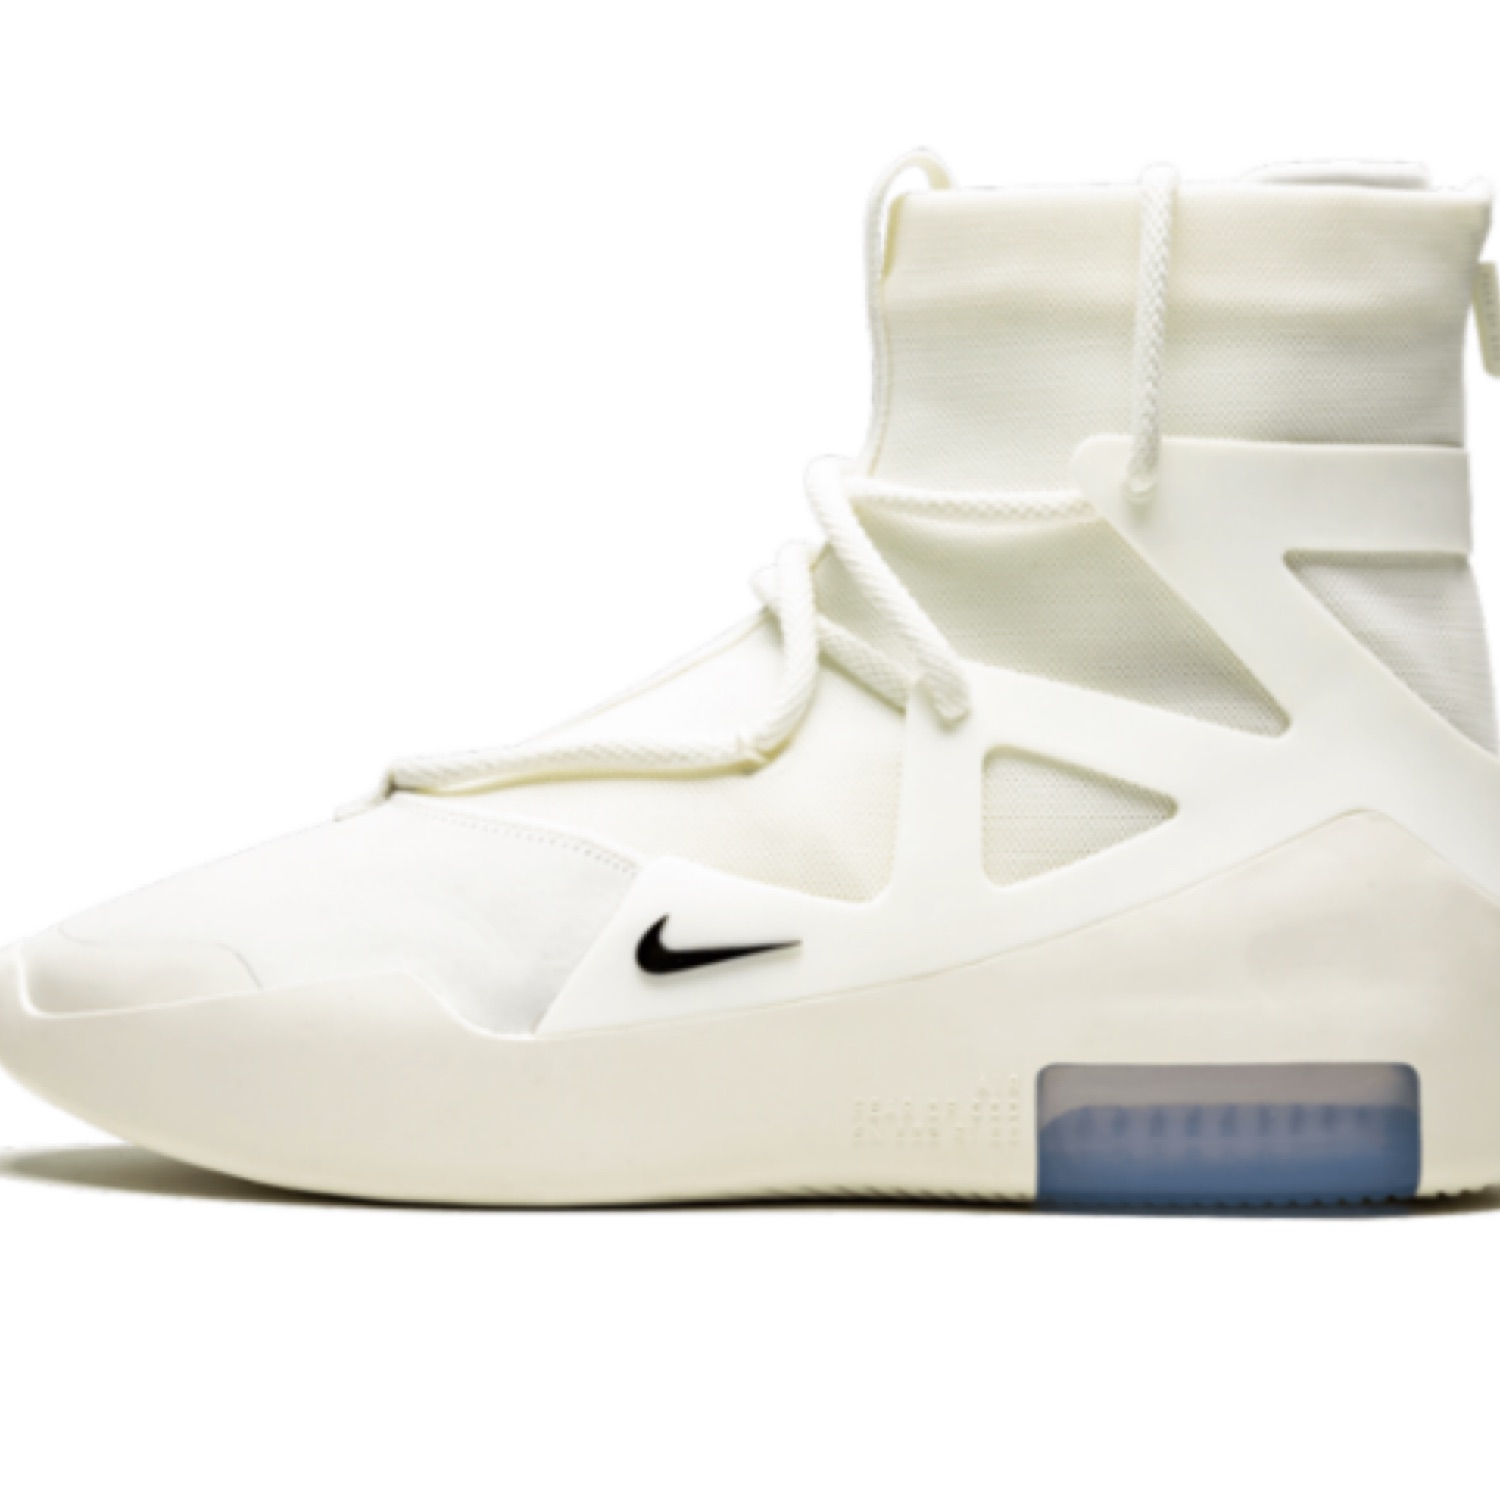 Fog X Nike Air Fear Of God 1 Sail